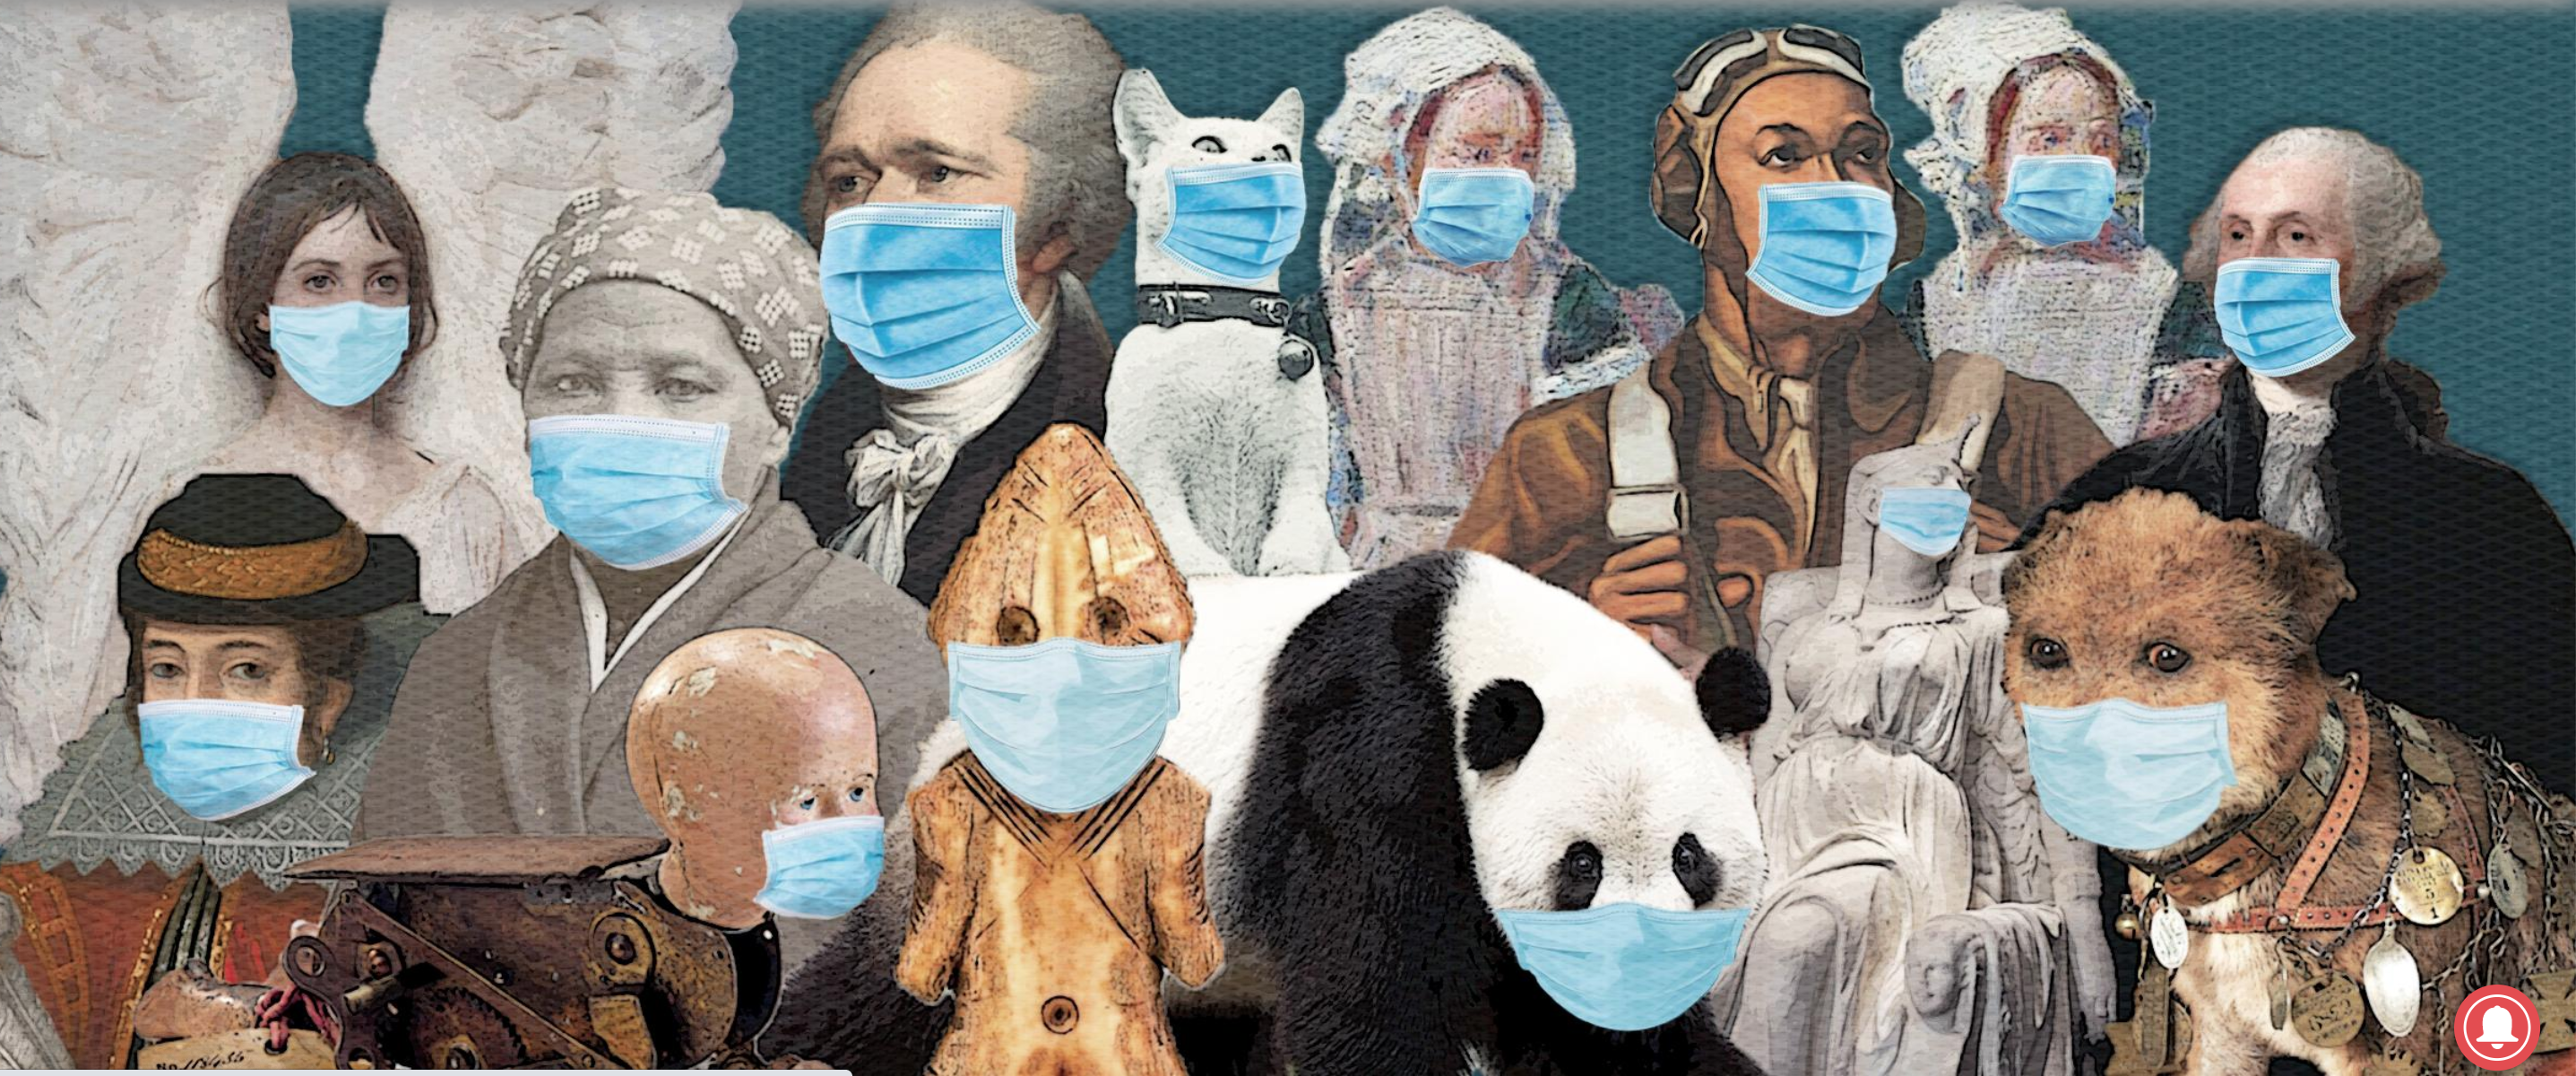 Masks graphic from Smithsonian Magazine